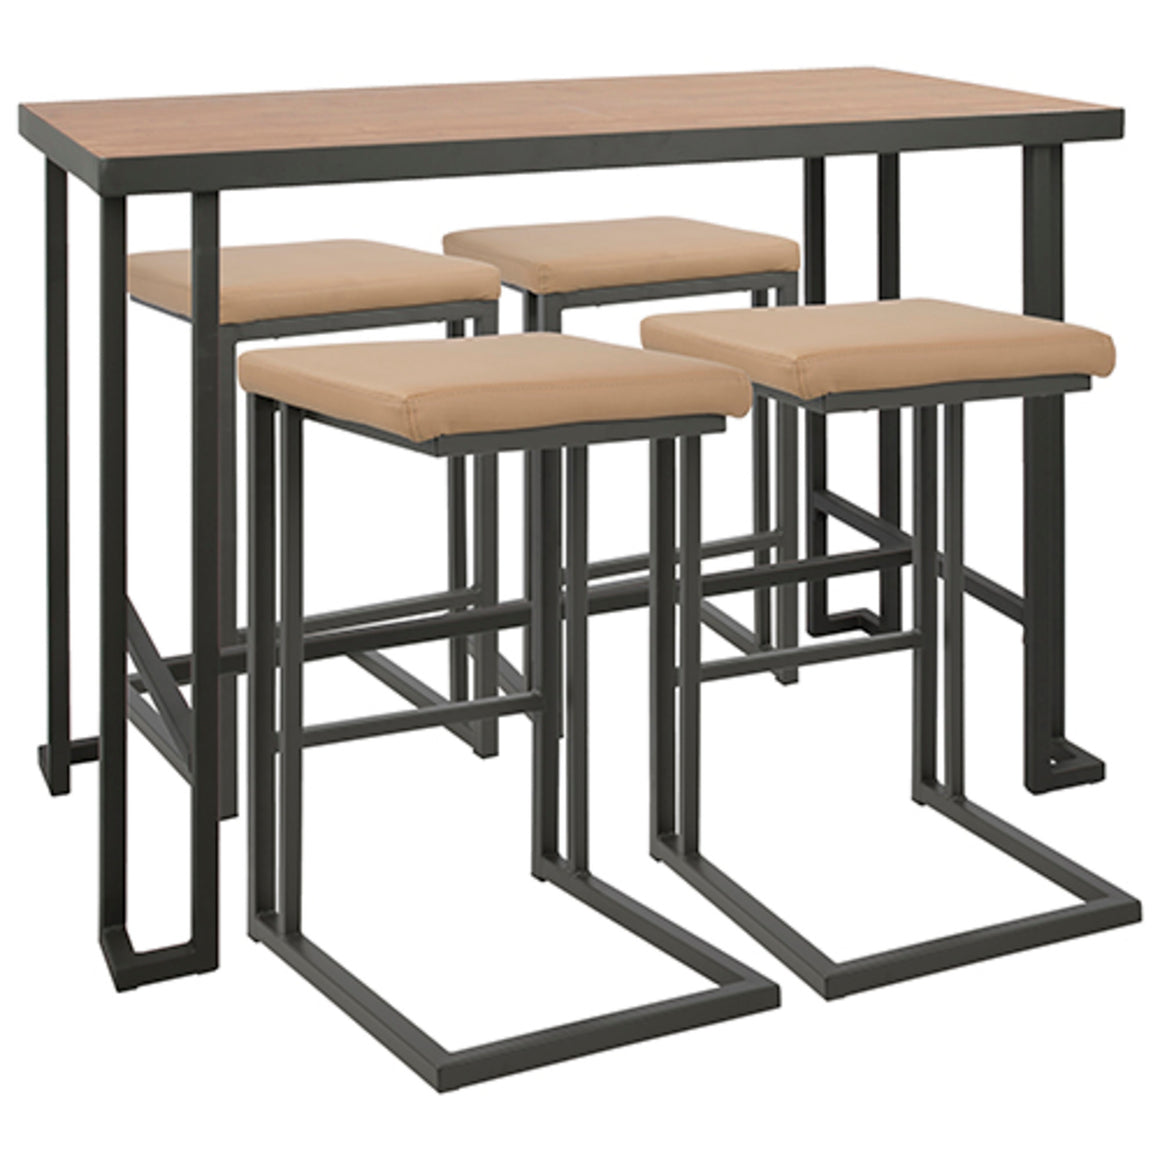 Roman 5-Piece Industrial Counter Height Dining Set in Grey and Camel by LumiSource